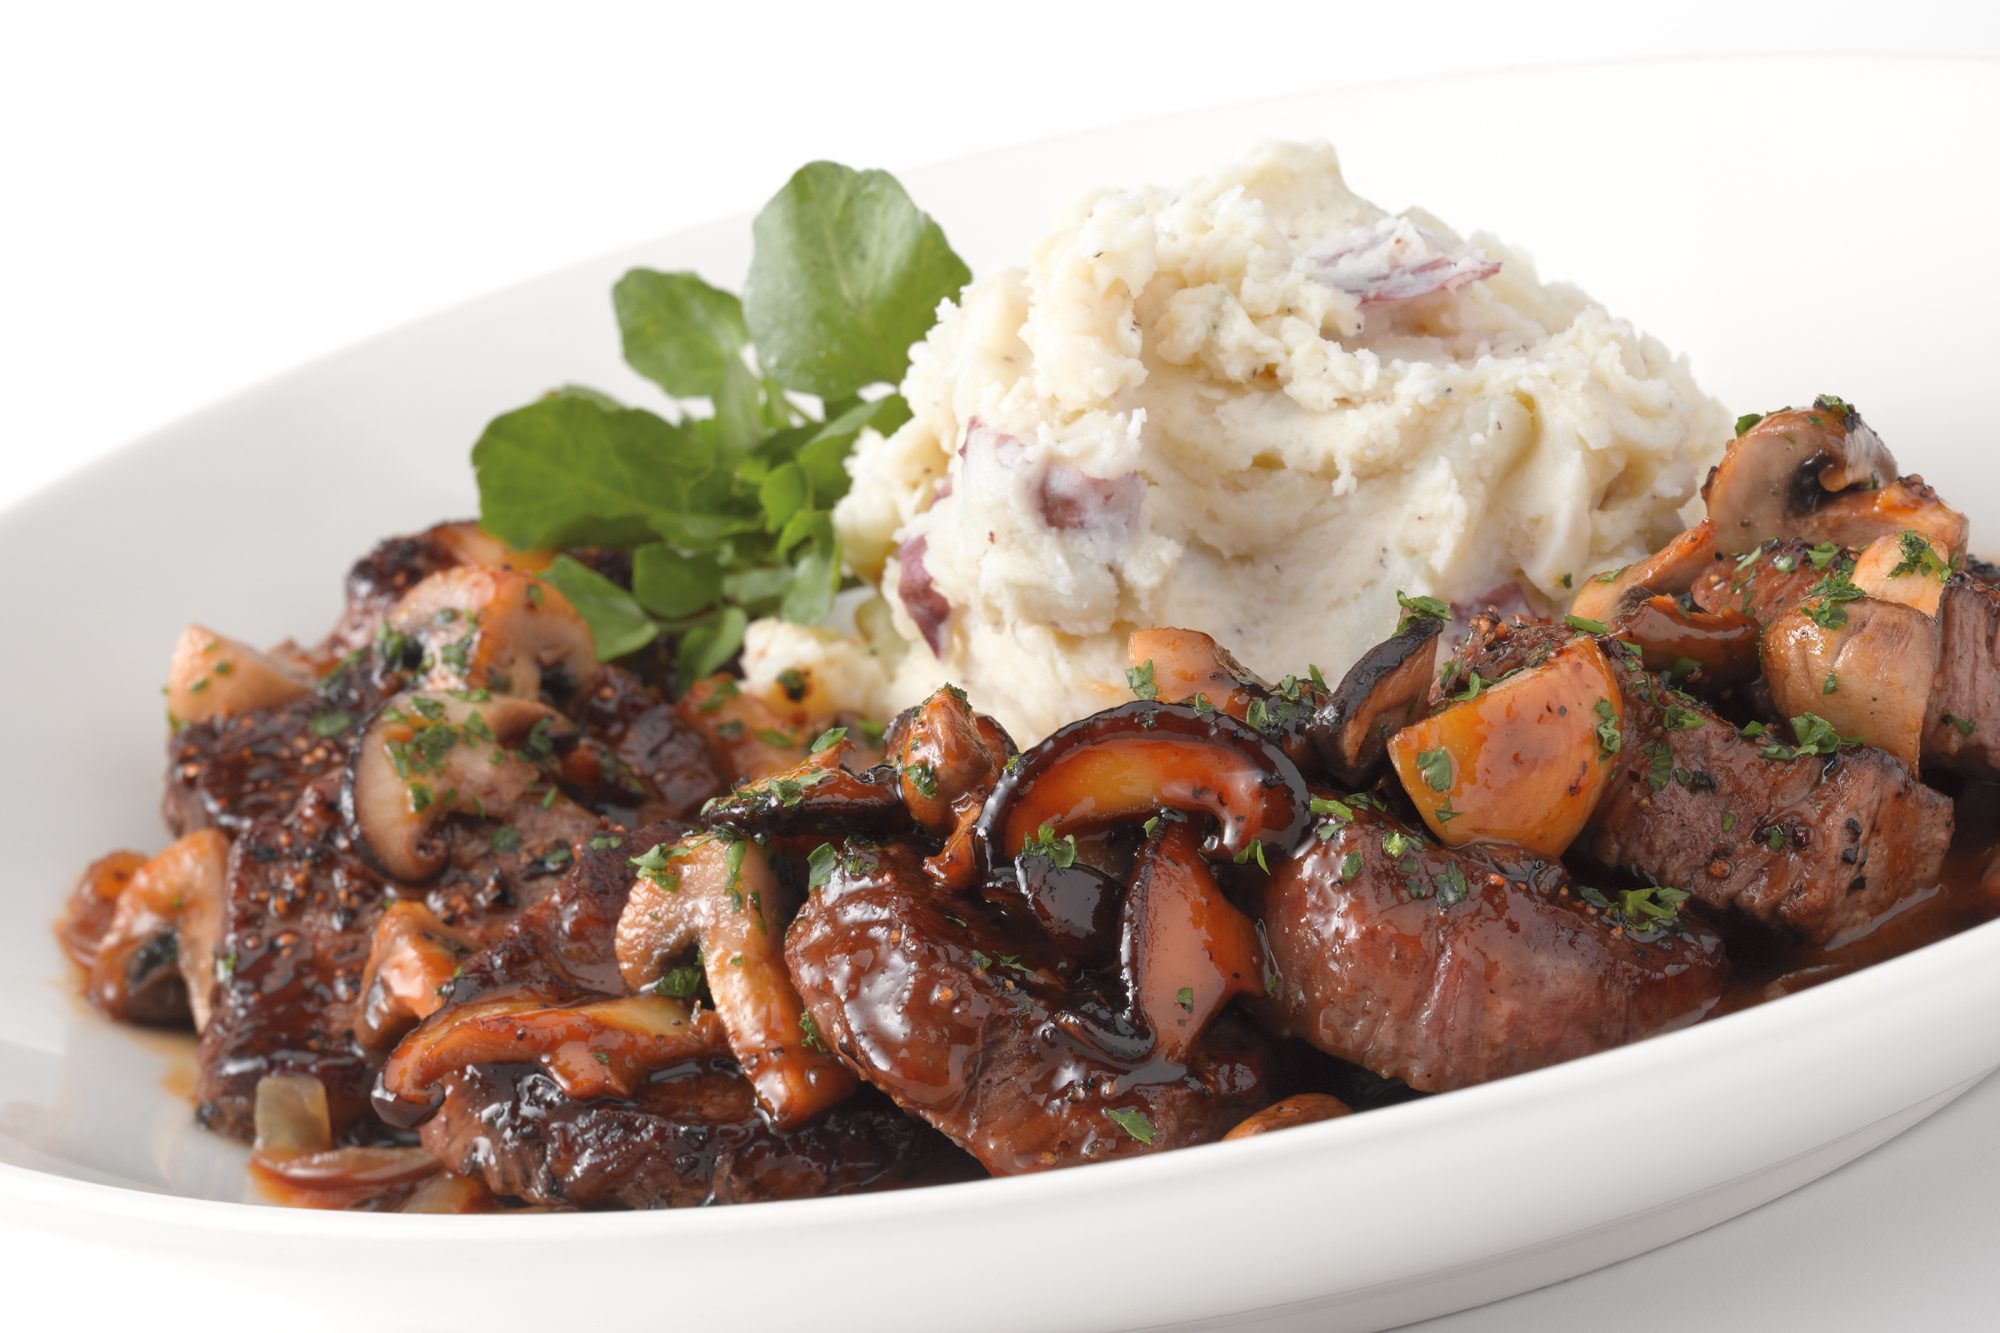 18023-cheesecake-factory-main-dishes-steak-diane